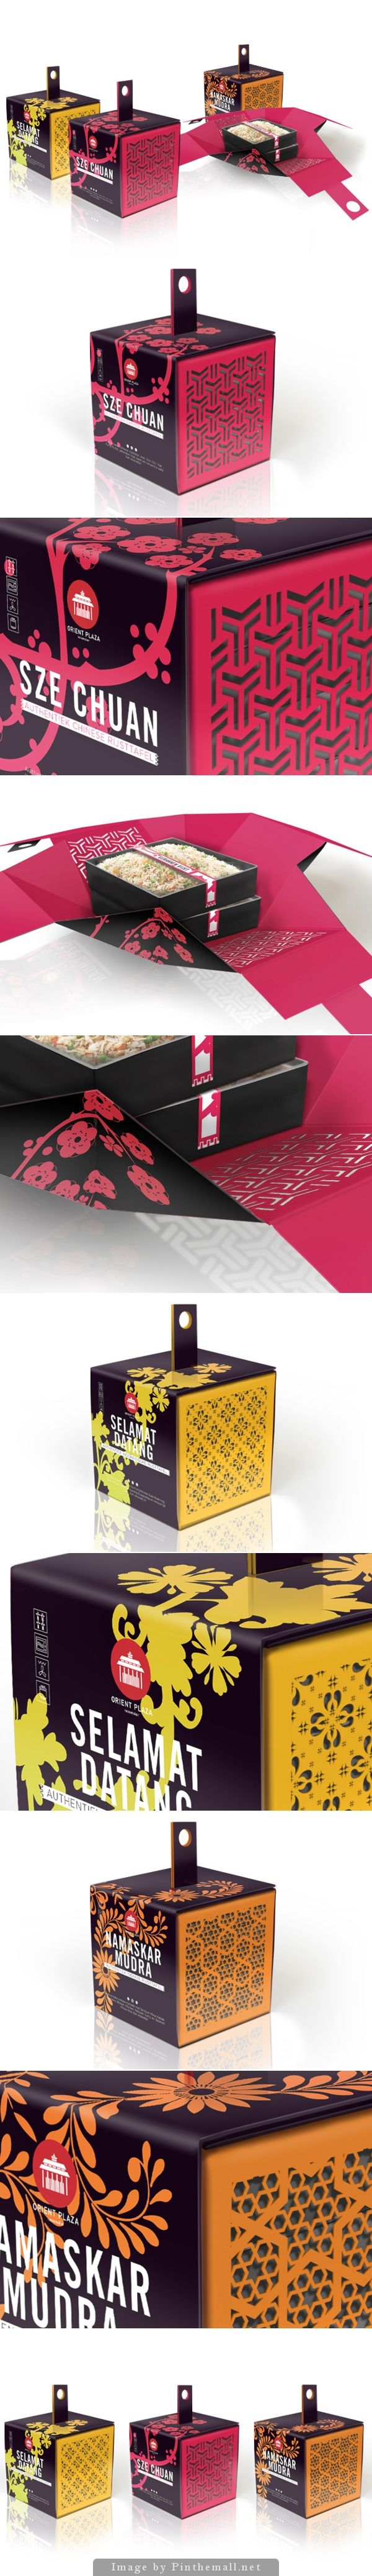 Pretty Asian inspired take-out #packaging by Reynhard Faber on #Behance curated by Packaging Diva PD created via https://www.behance.net/gallery/15473817/ORIENTAL-PACKAGING-DESIGN